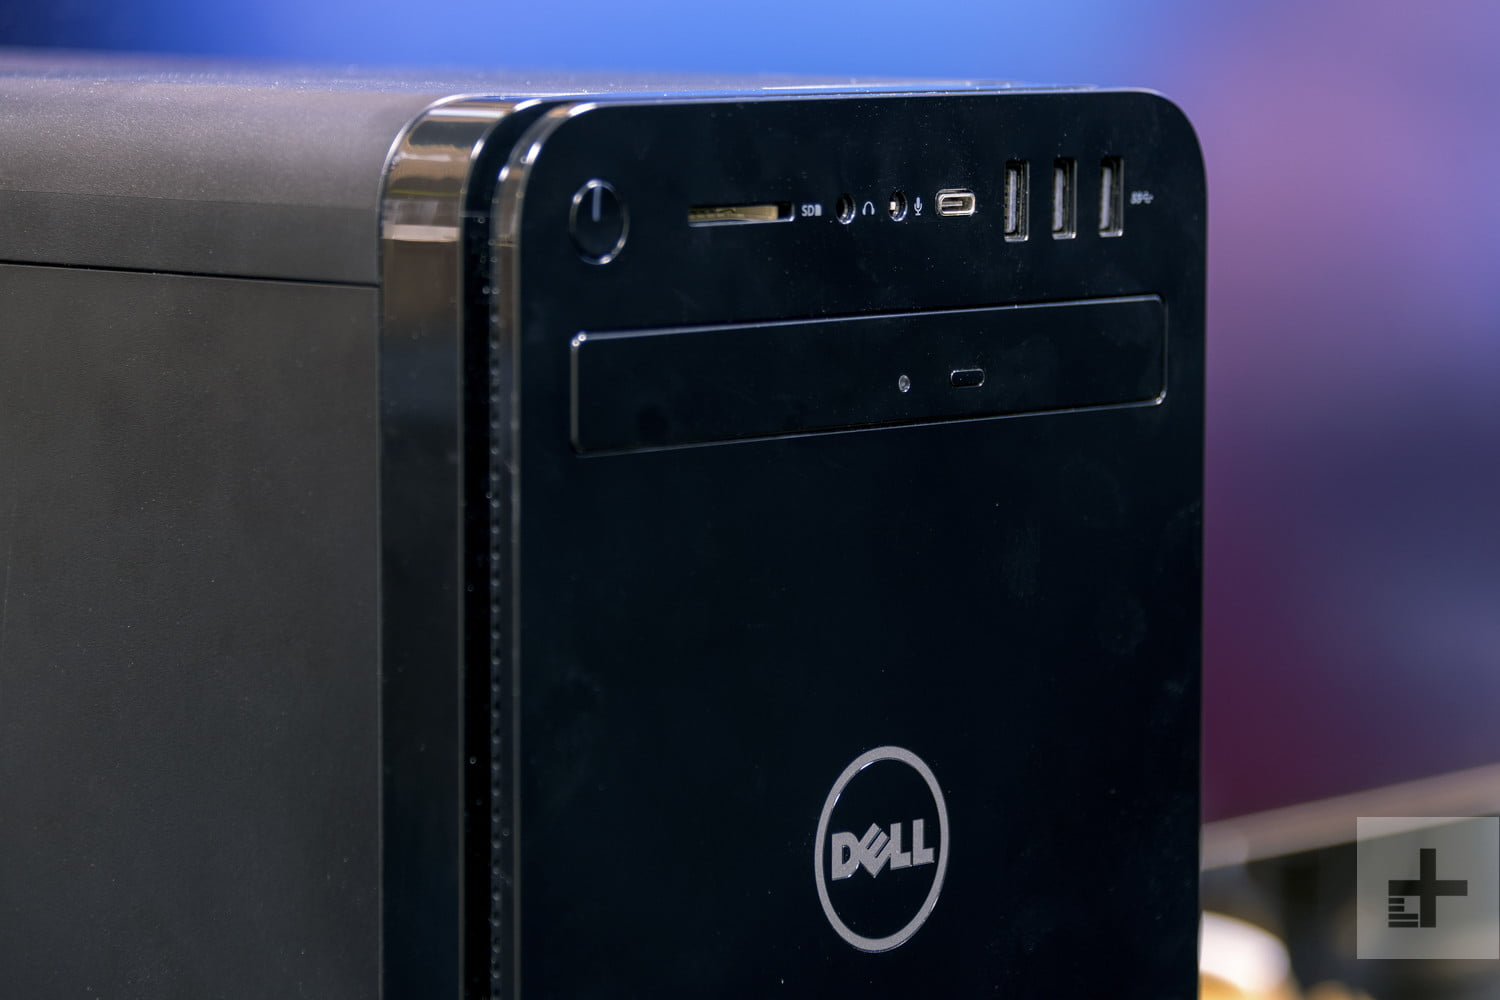 Dell XPS 8930 Review | A Secret Gaming PC? | Digital Trends